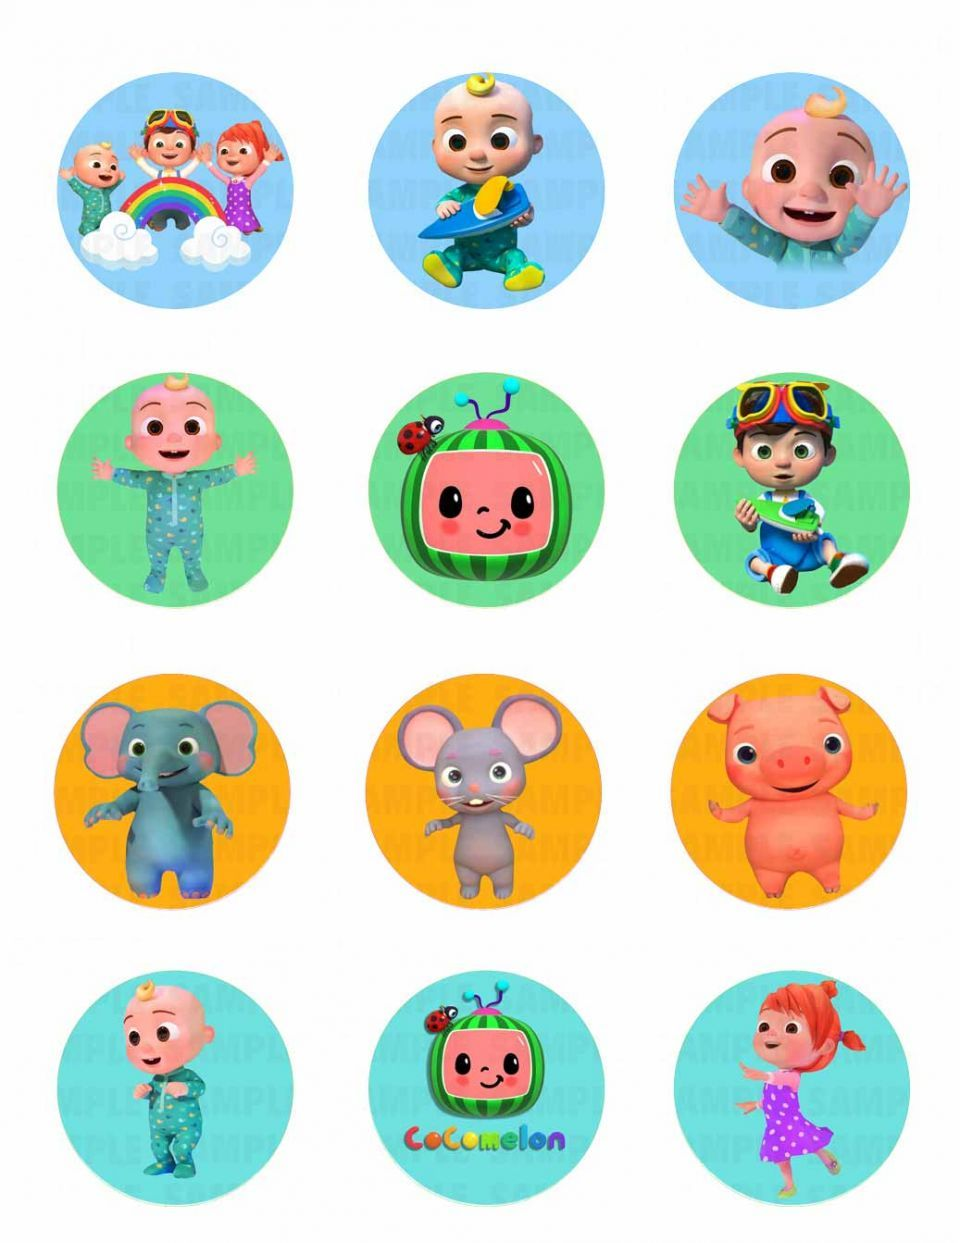 Cocomelon Edible Image Cupcake Cookie Topper Baby Boy 1st Birthday Party 2nd Birthday Party For Boys Baby Birthday Party Theme